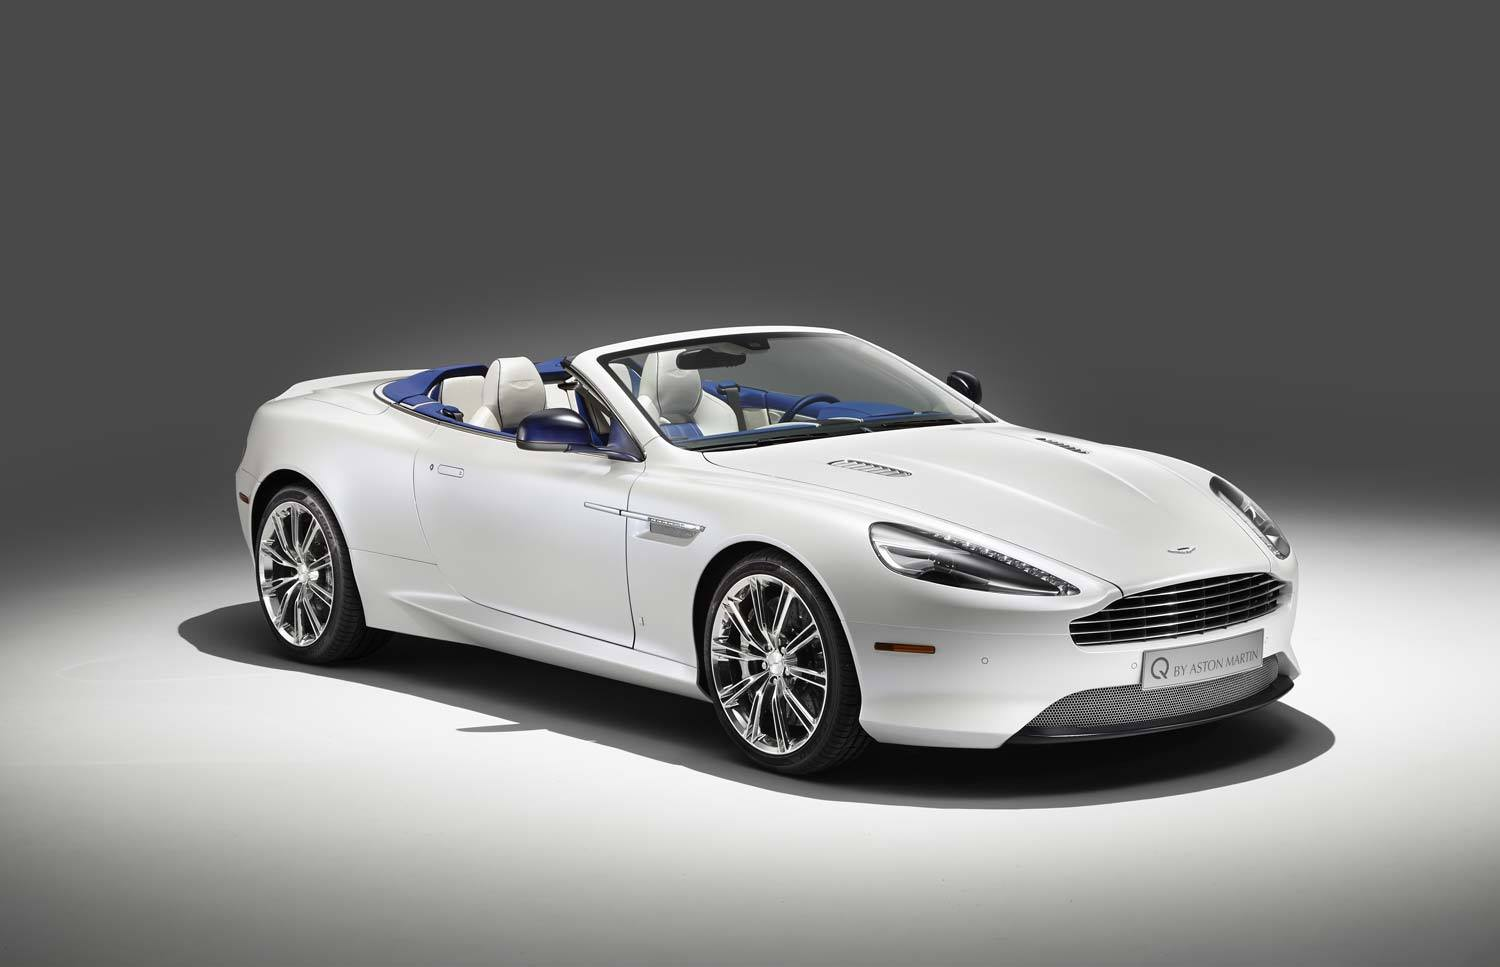 q by aston martin db9 volante in morning frost gtspirit. Black Bedroom Furniture Sets. Home Design Ideas